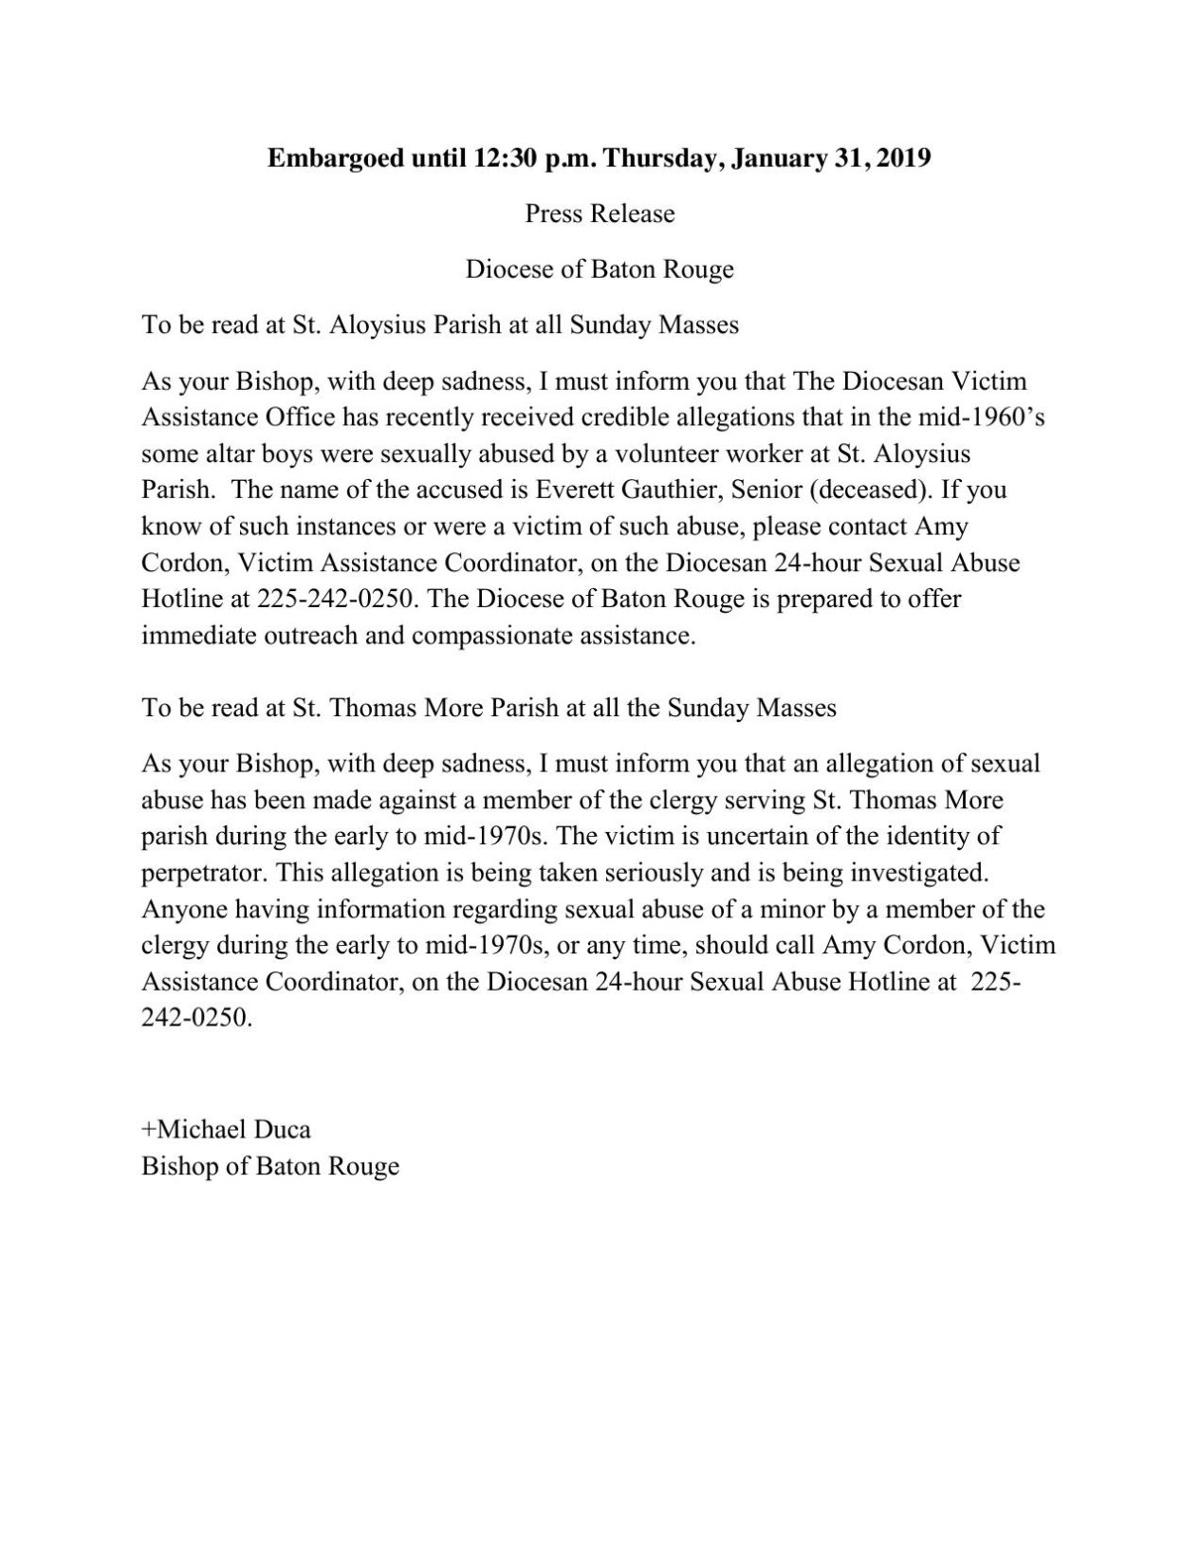 St. Thomas More and St. Aloysius Press Release